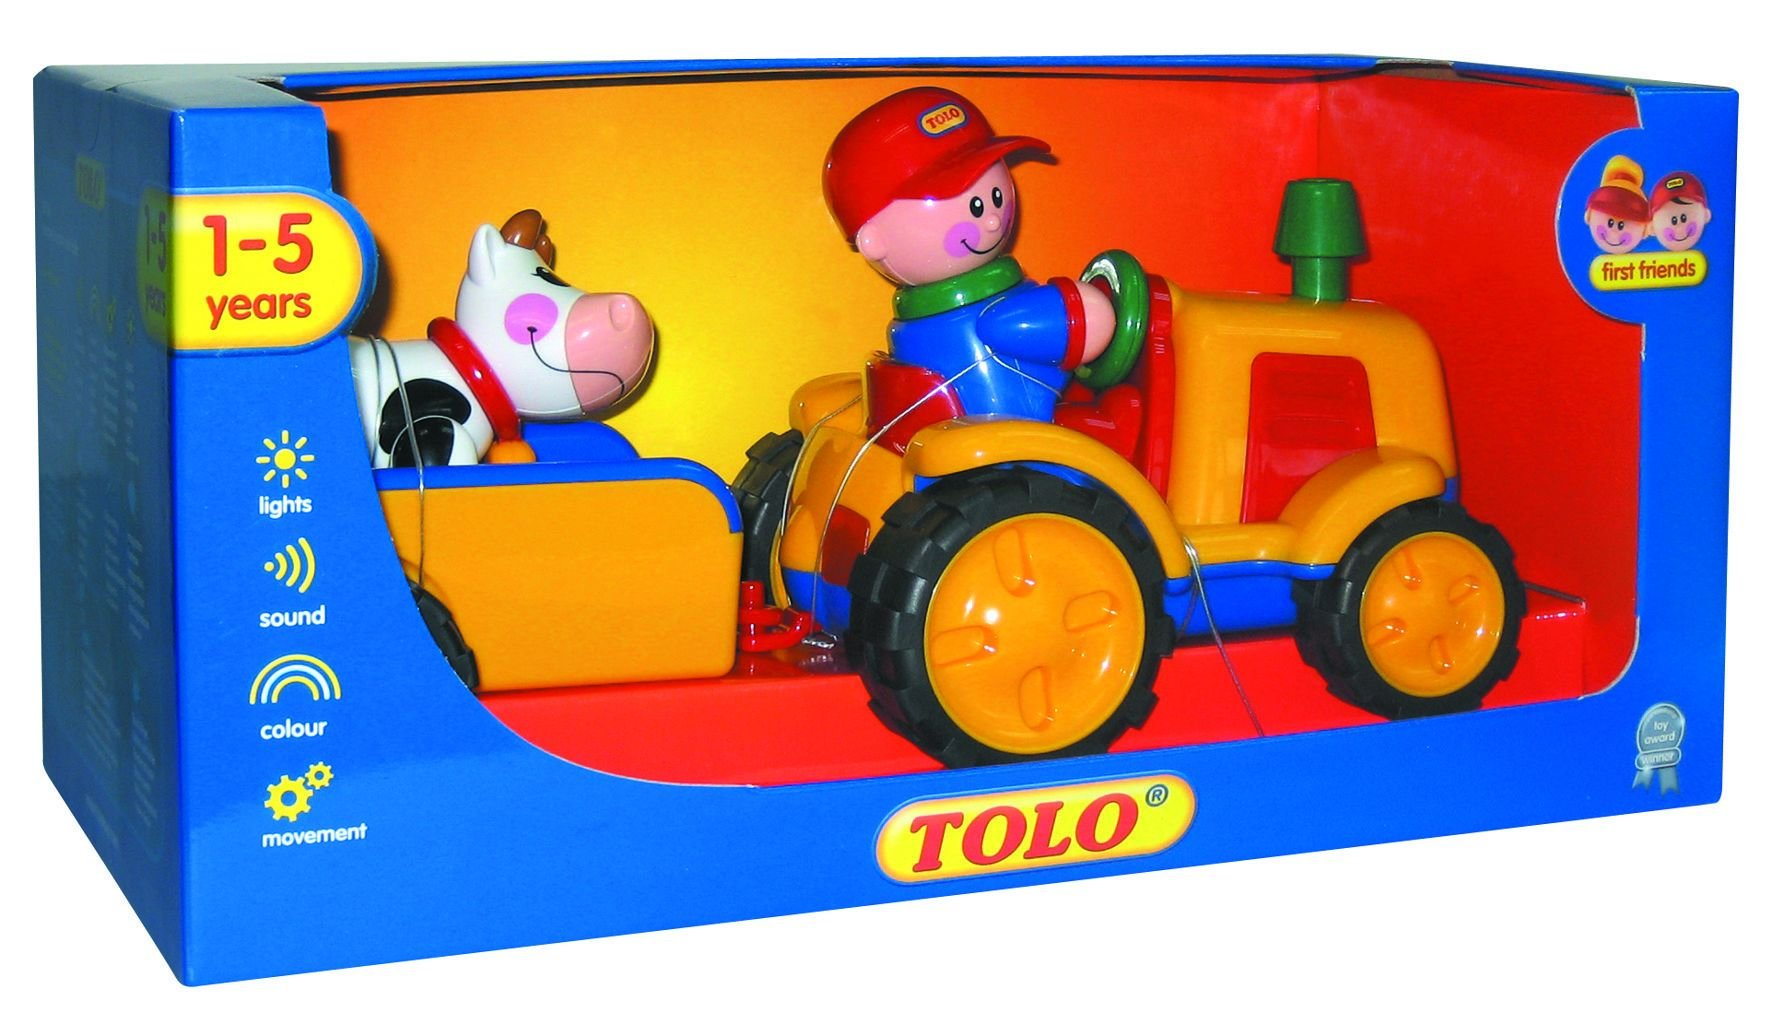 Tolo Toys First Friends Tractor Trailer